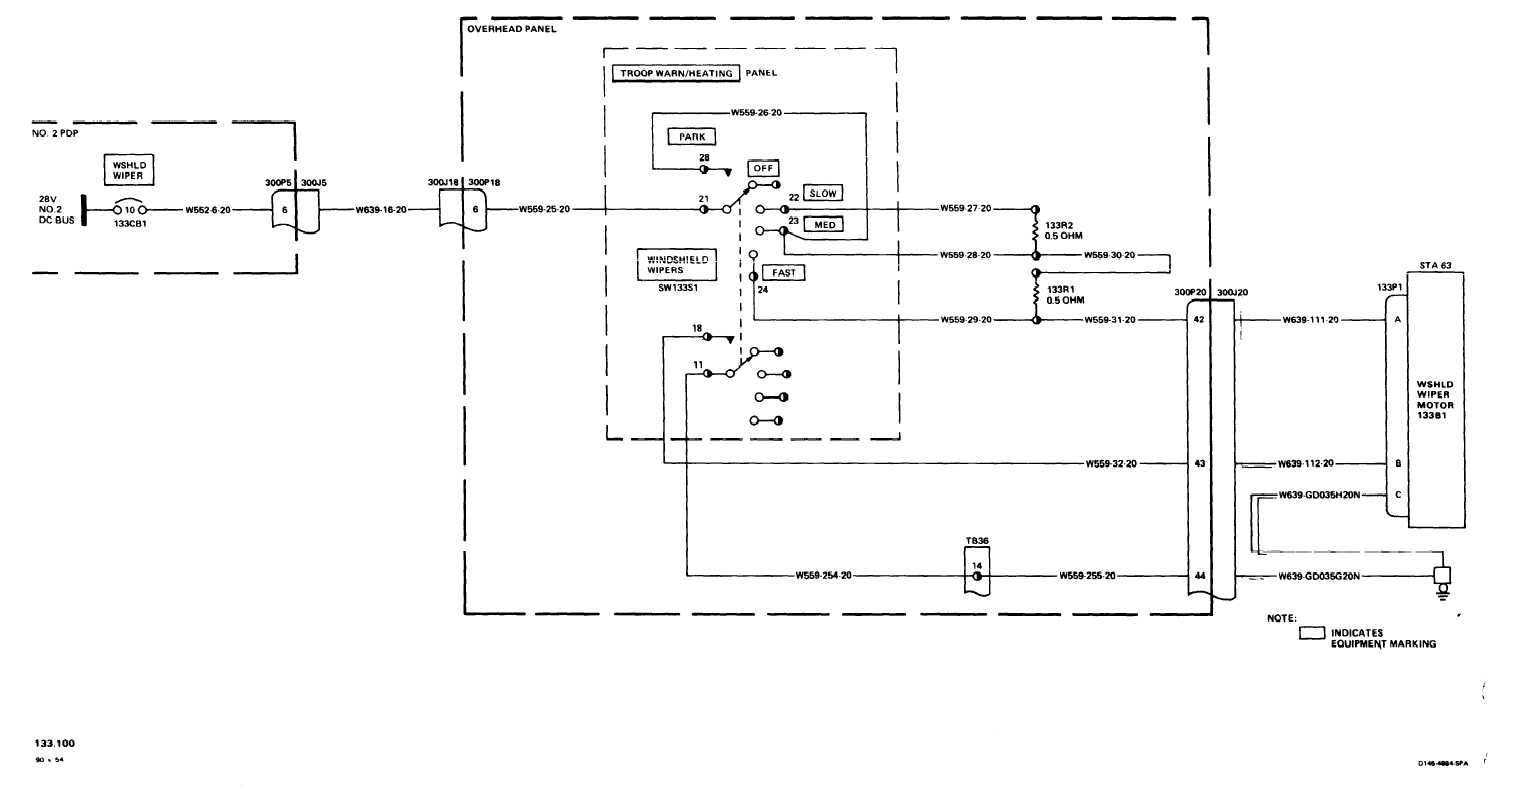 F650 Wiring Diagram Org | Wiring Liry on ford f750 wiring-diagram, ford excursion wiring schematic, ford f650 brake light, ford flex wiring schematic, ford f650 turn signal, ford f-450 super duty wiring schematic, ford f150 wiring schematic, ford expedition wiring schematic, ford e450 wiring schematic, ford explorer wiring schematic, ford f550 wiring schematic, ford f800 wiring schematic, ford ranger wiring schematic, 2001 ford wiring schematic, ford ln8000 wiring schematic, ford taurus wiring schematic, ford f650 ignition switch, ford focus wiring schematic, ford f250 wiring schematic, ford f650 super duty,